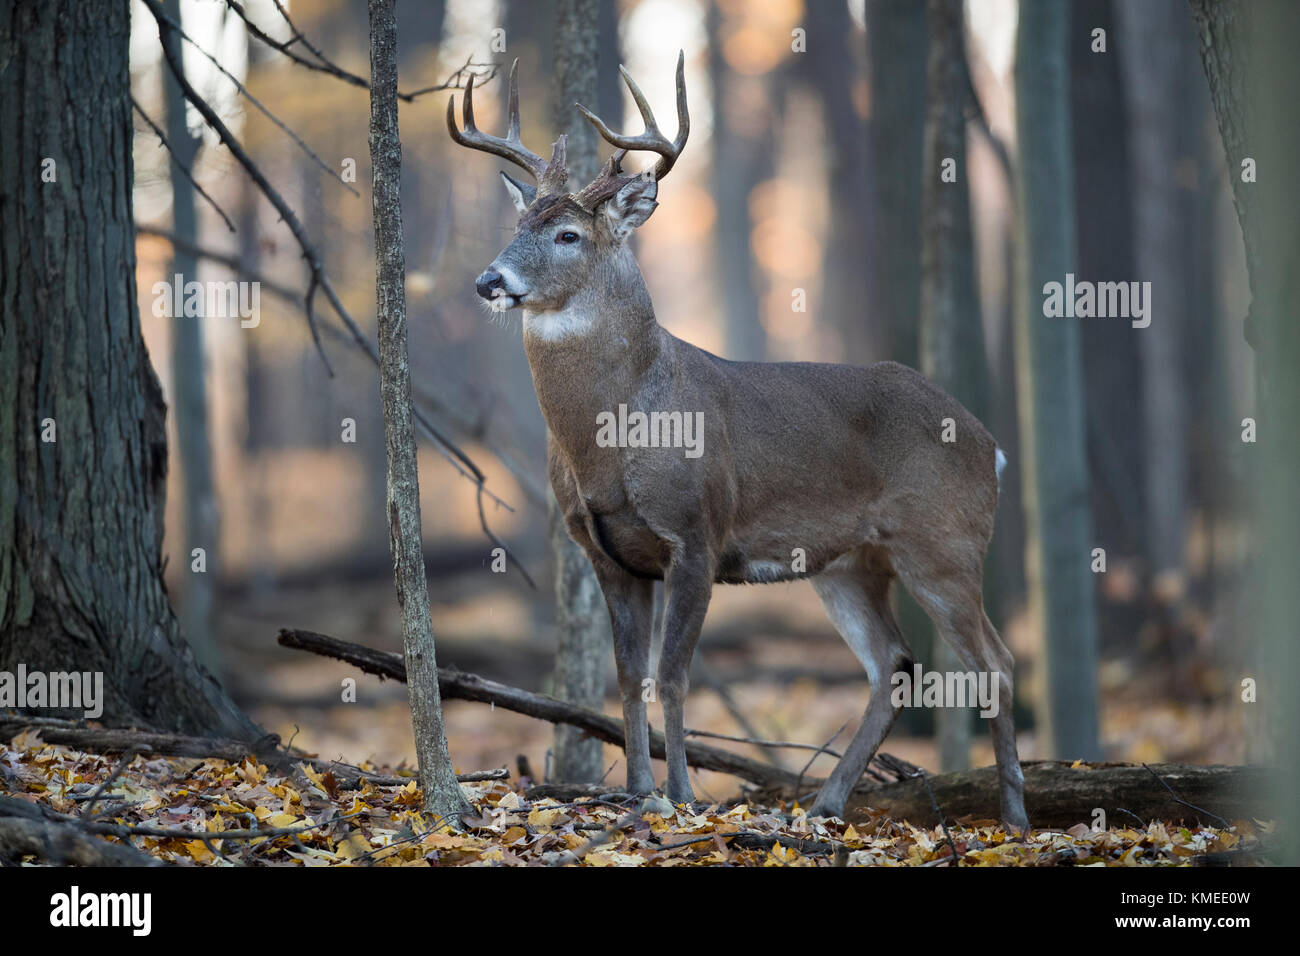 A mature buck whitetail deer standing very alert in the forest. - Stock Image